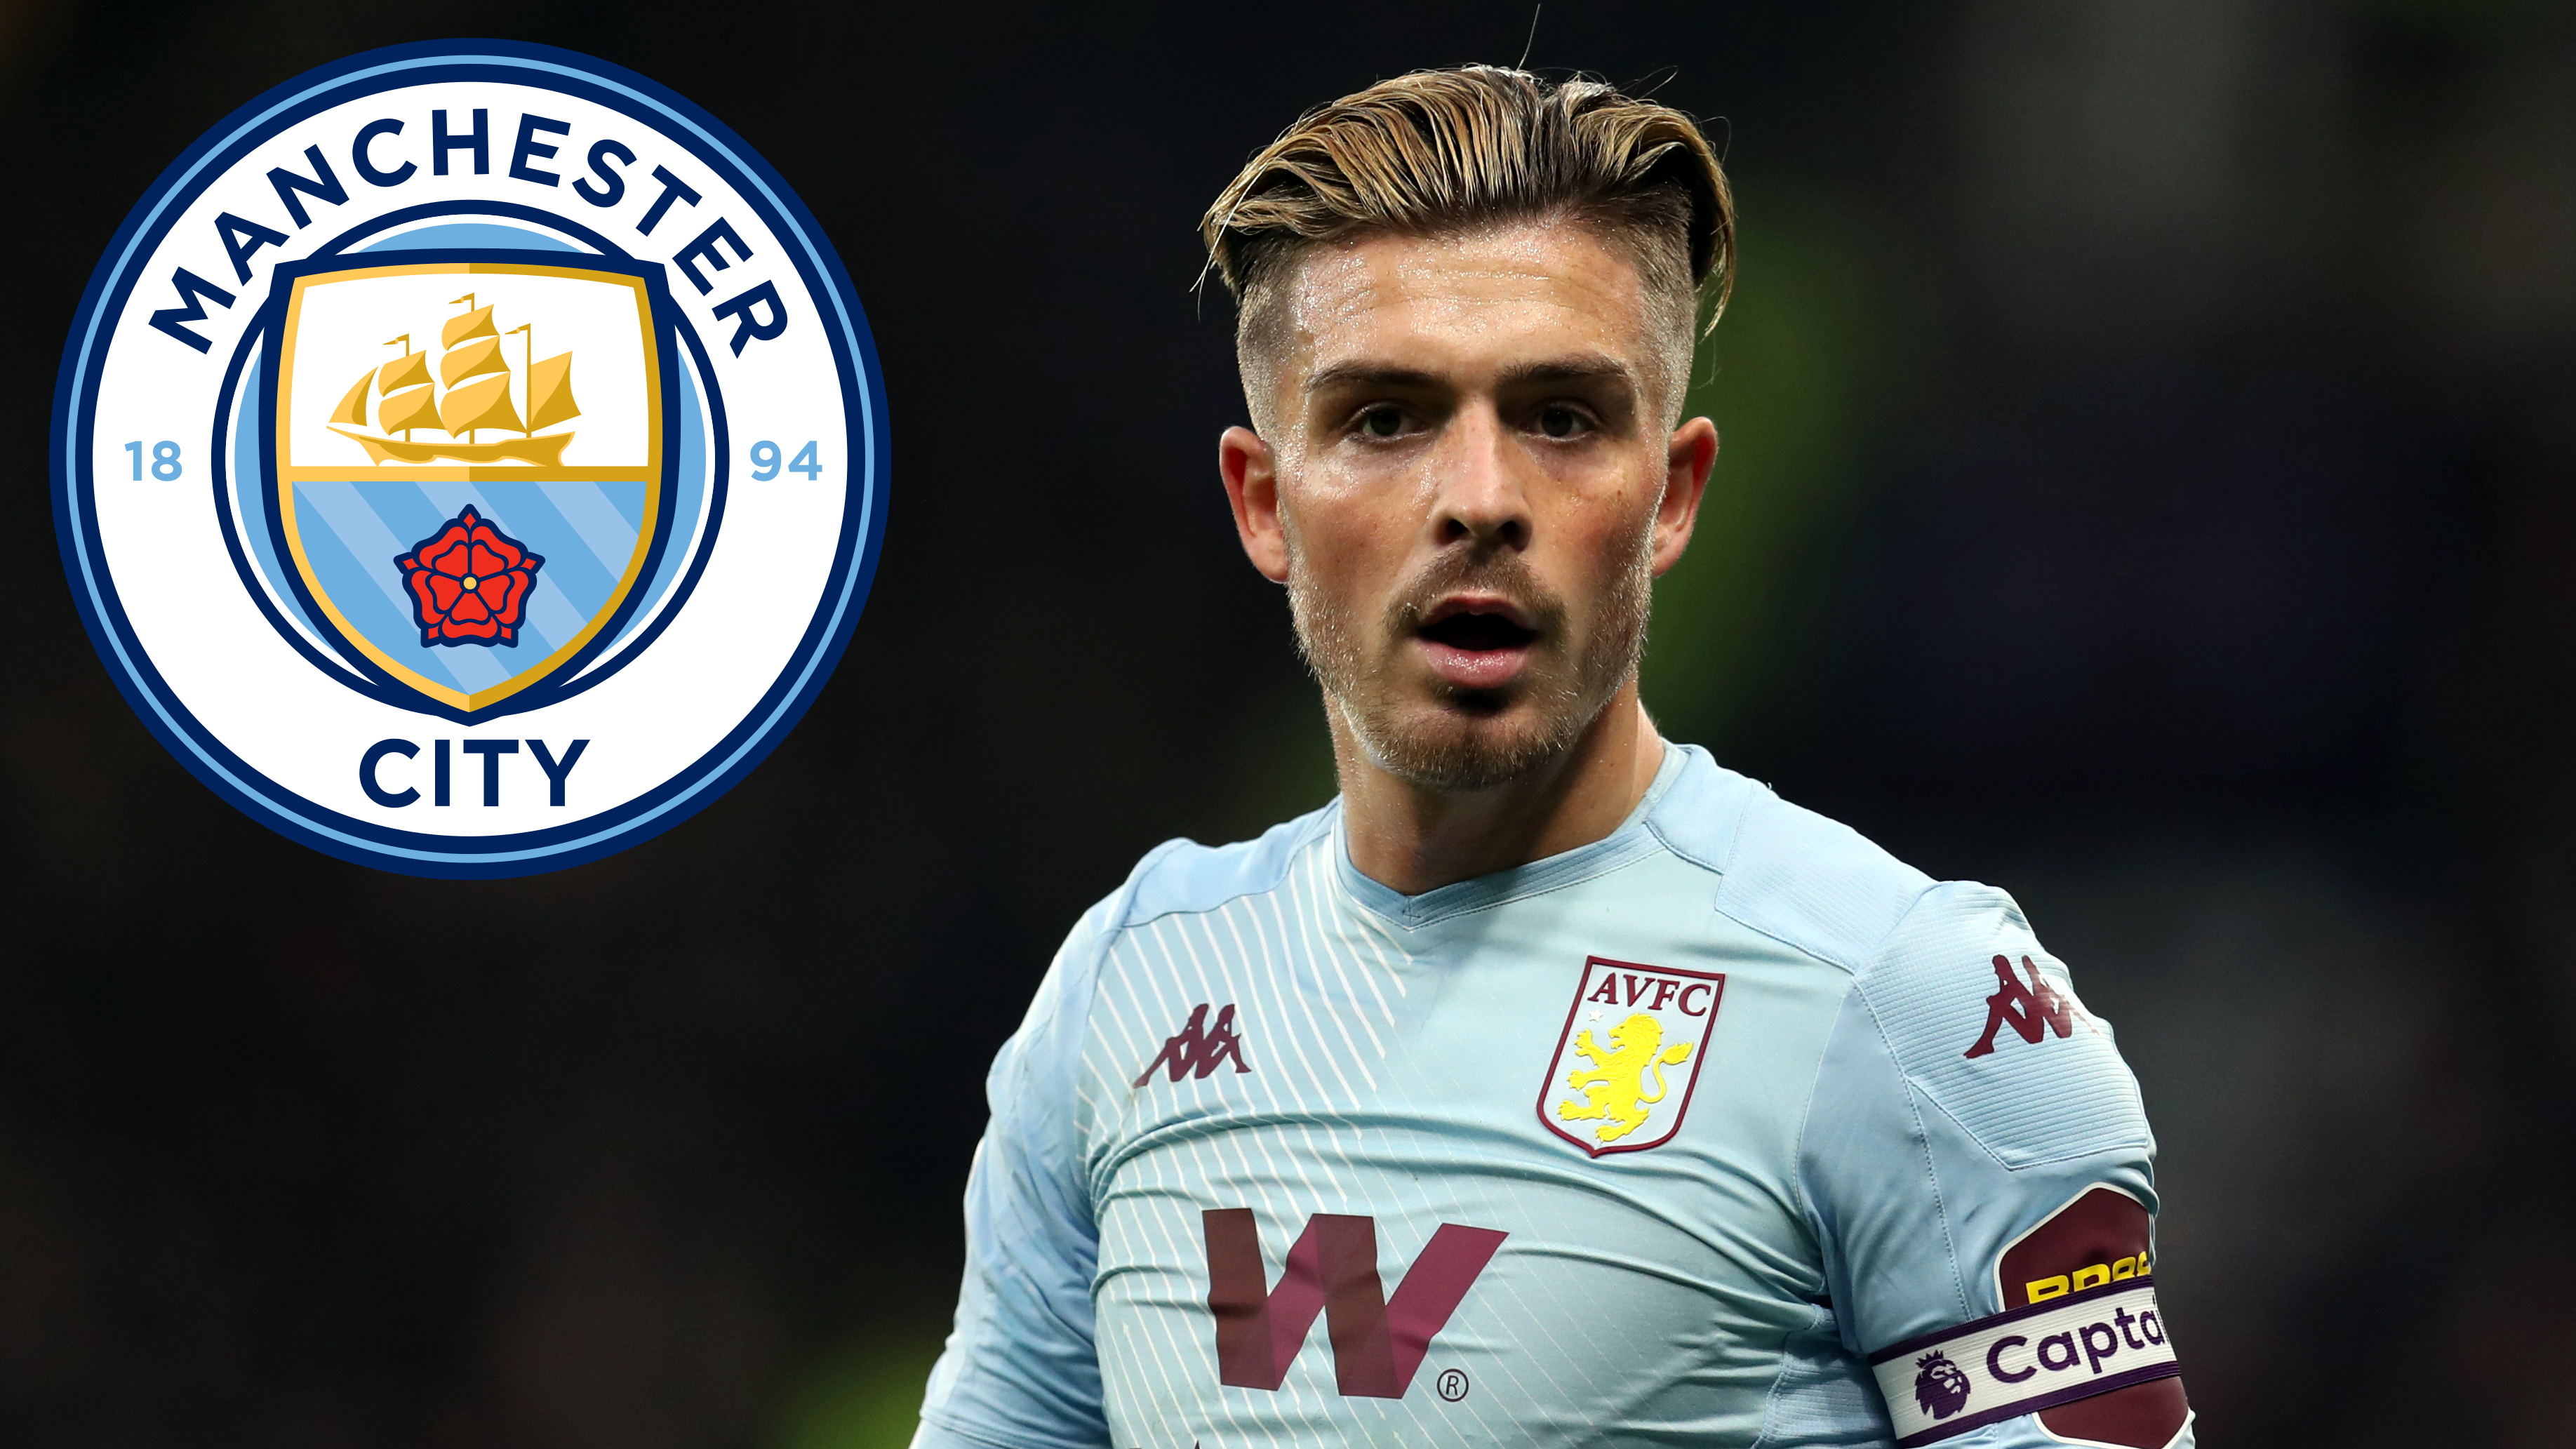 Grealish and Manchester City link